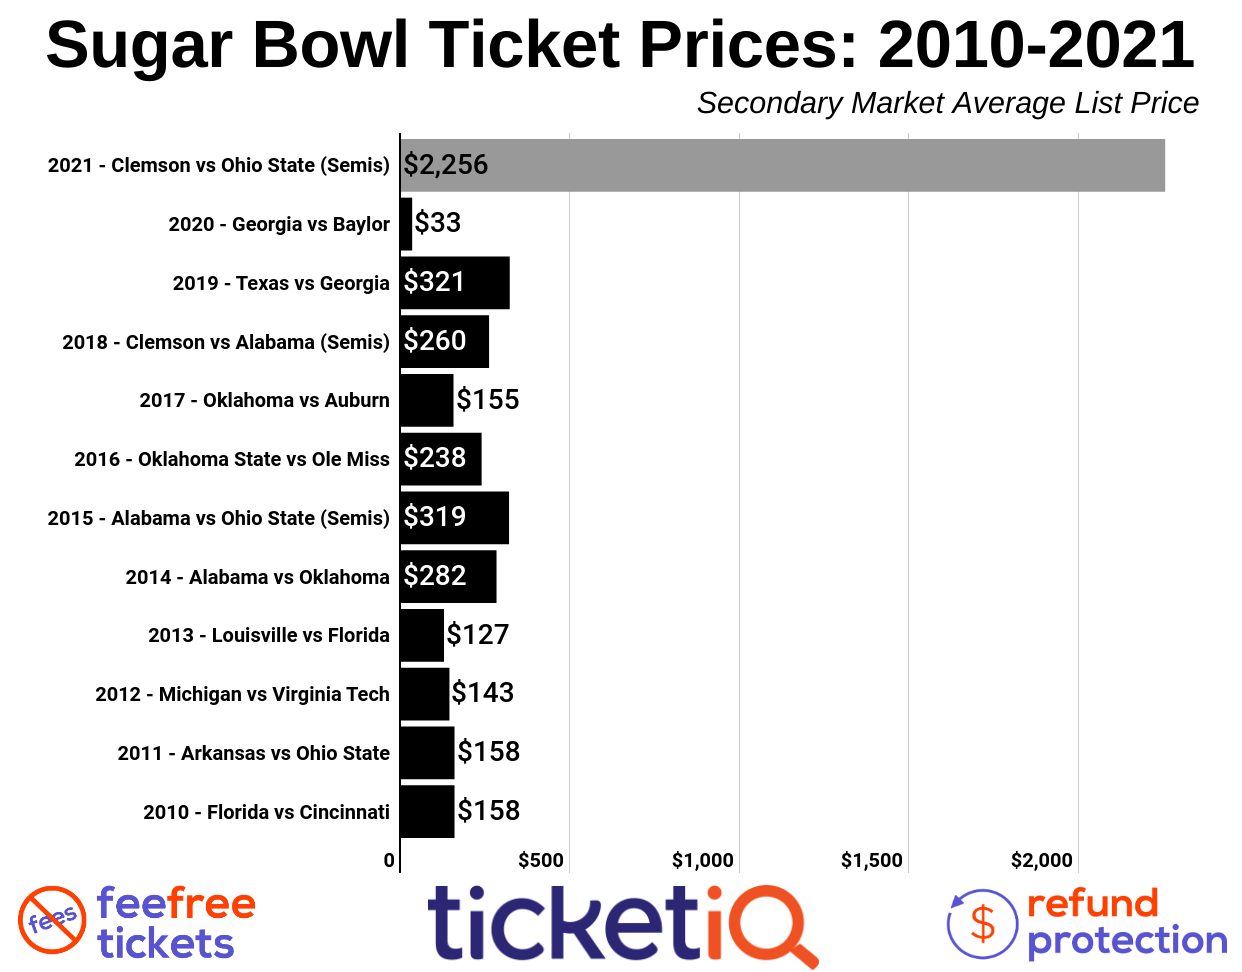 How To Find The Cheapest Sugar Bowl Tickets (Clemson vs Ohio State) - CFP Semifinals